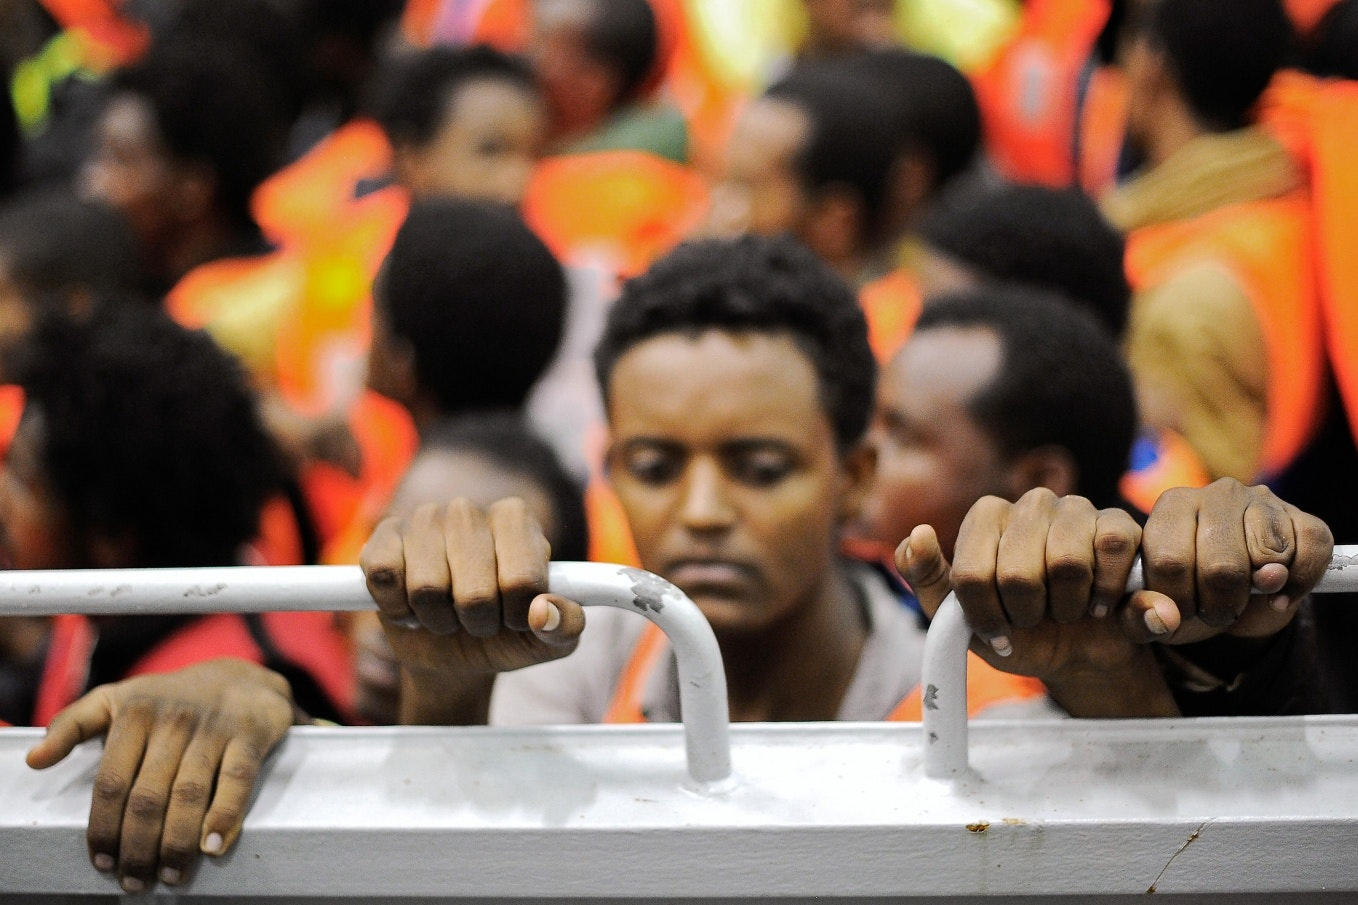 Migrants from Africa on a boat in Italy